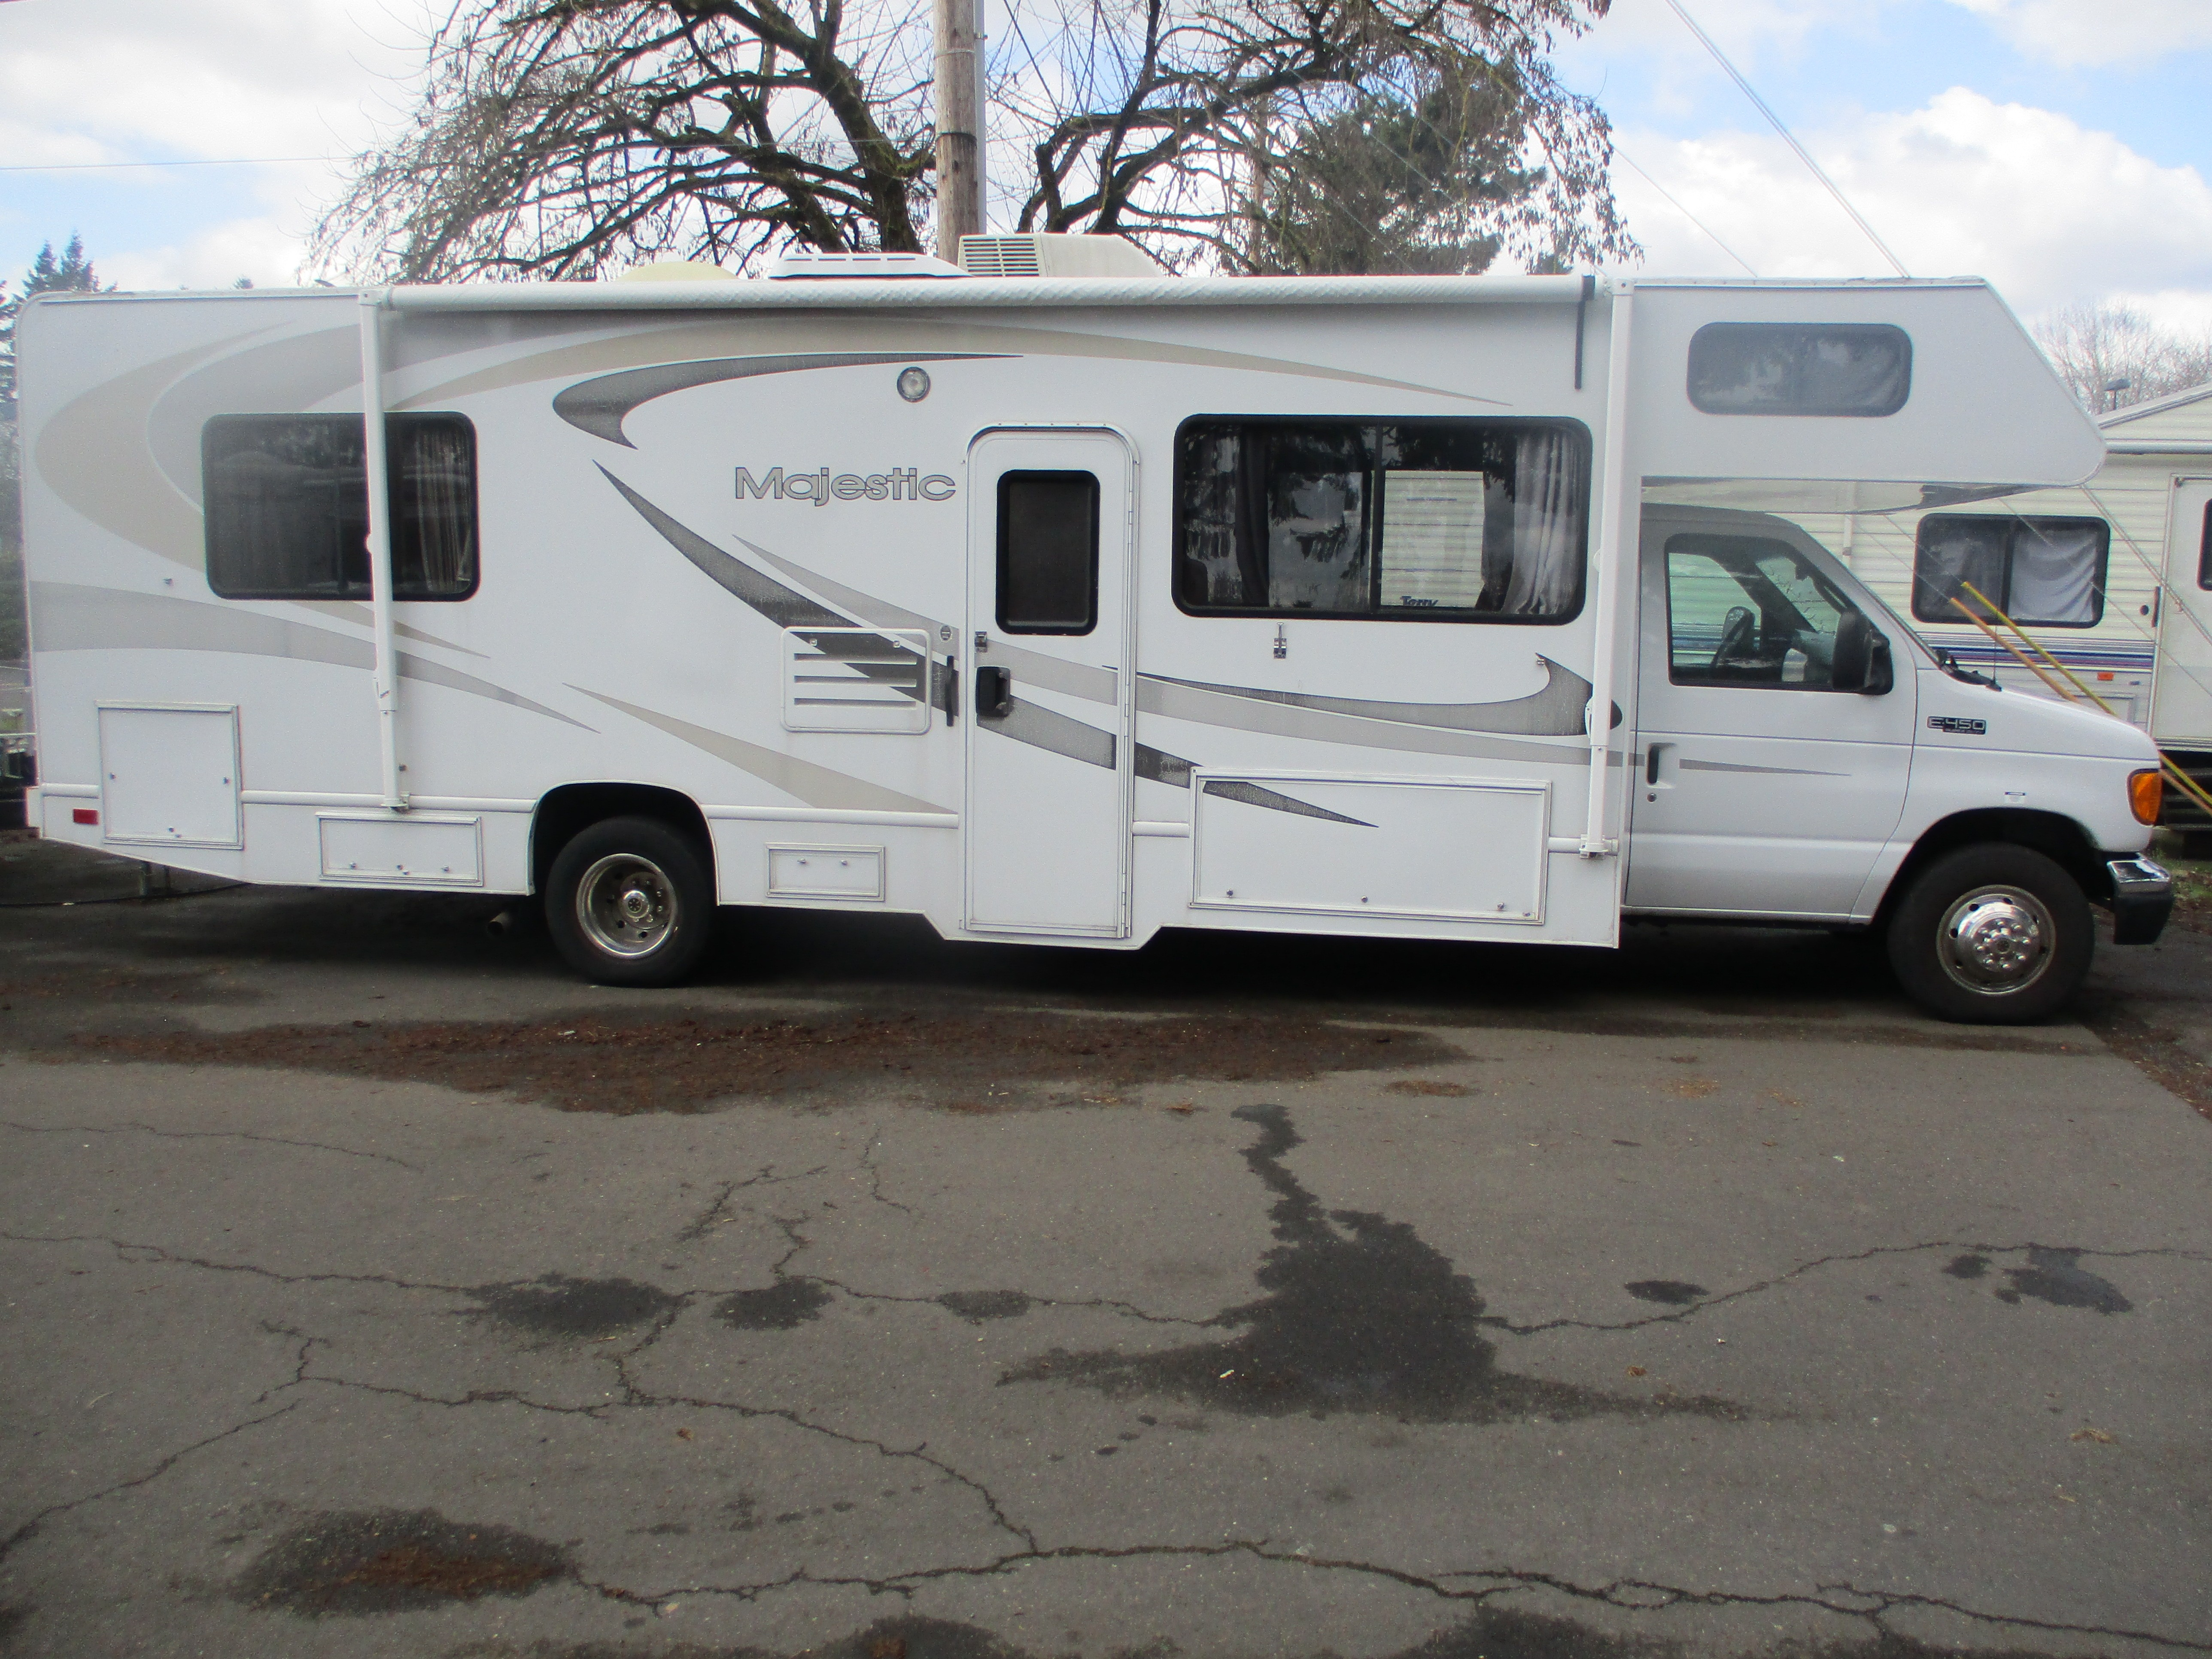 Used, 2005, Four Winds, MAGESTIC, RV - Class C